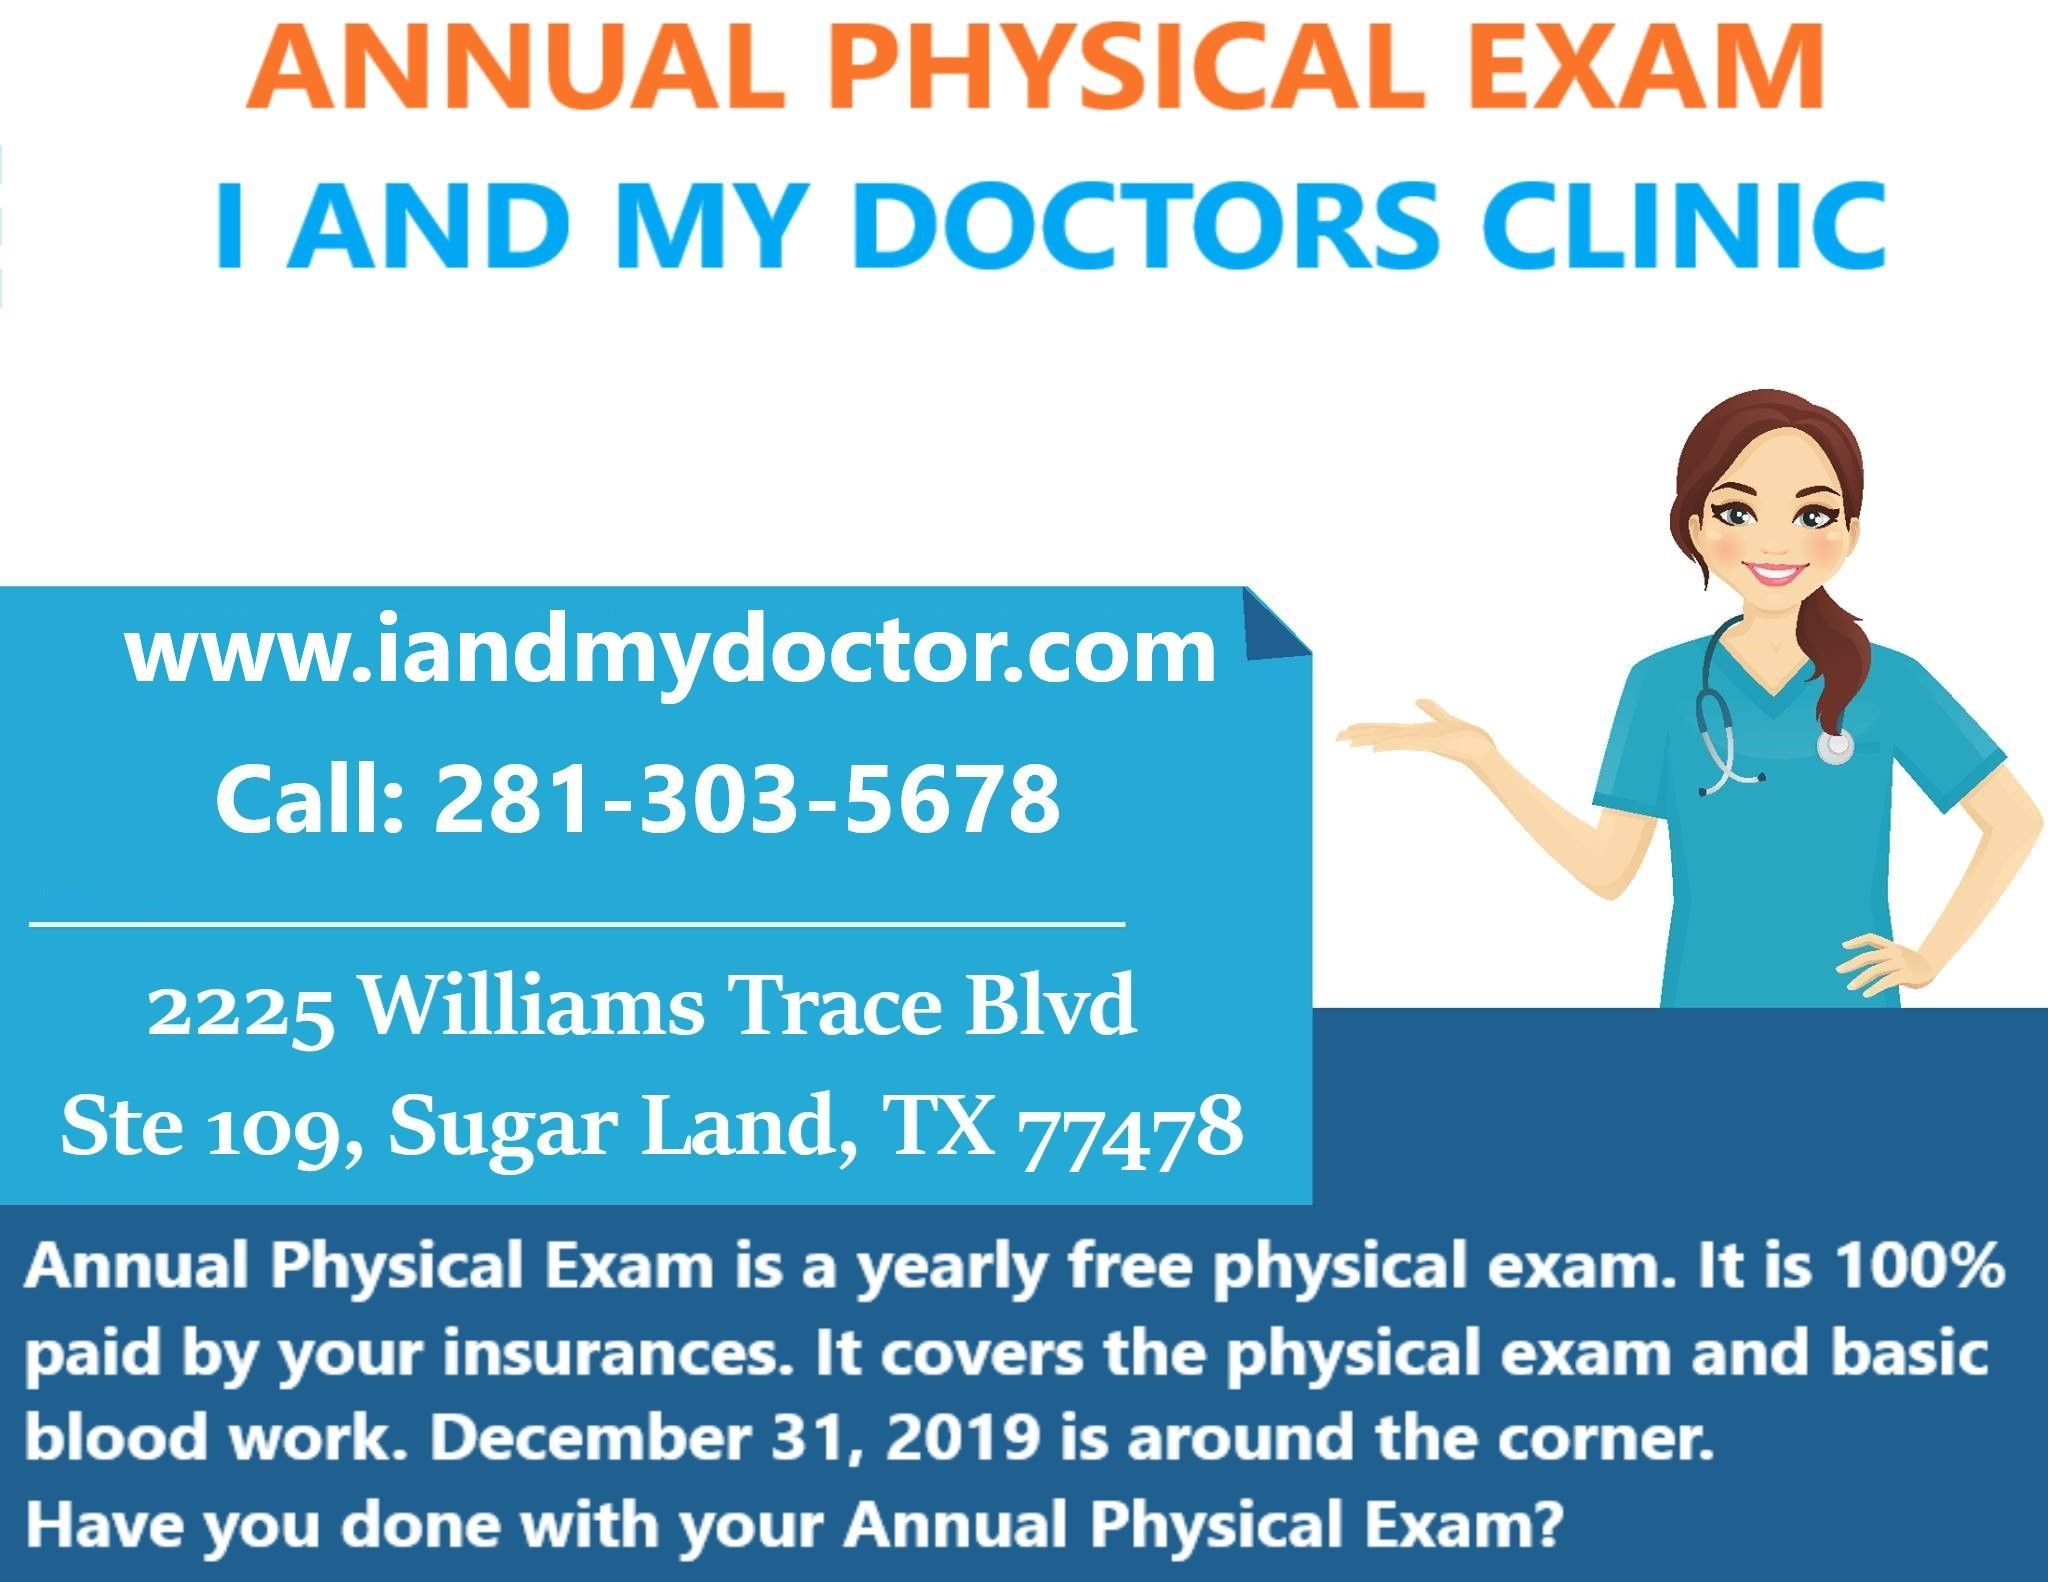 ANNUAL PHYSICAL EXAM in 2020 Annual physical exam